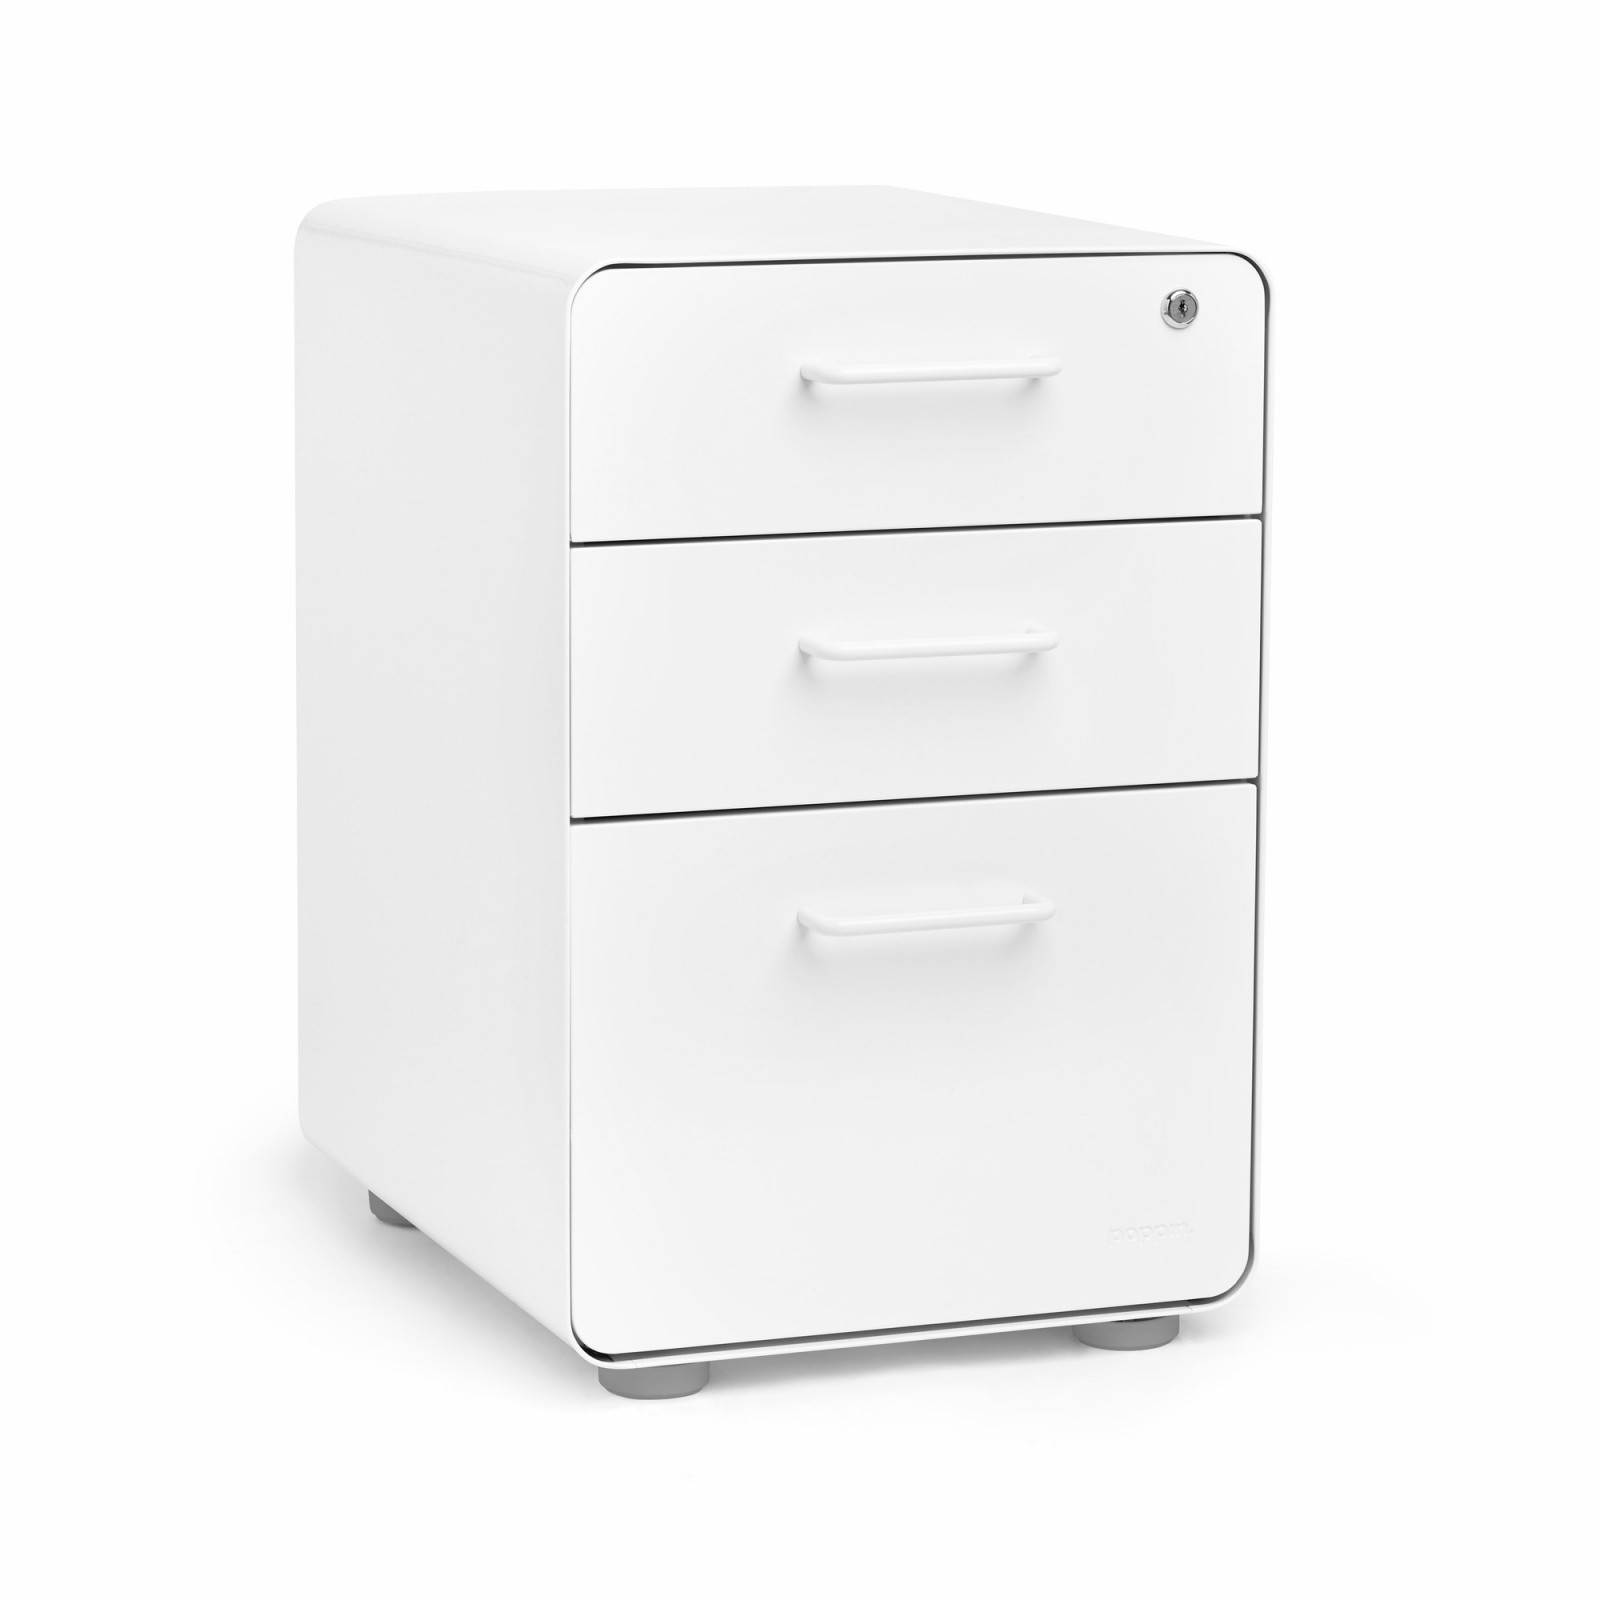 file cabinet magnifique wood file cabinet with lock 2 drawer cabinet mdern ak lcking 0d